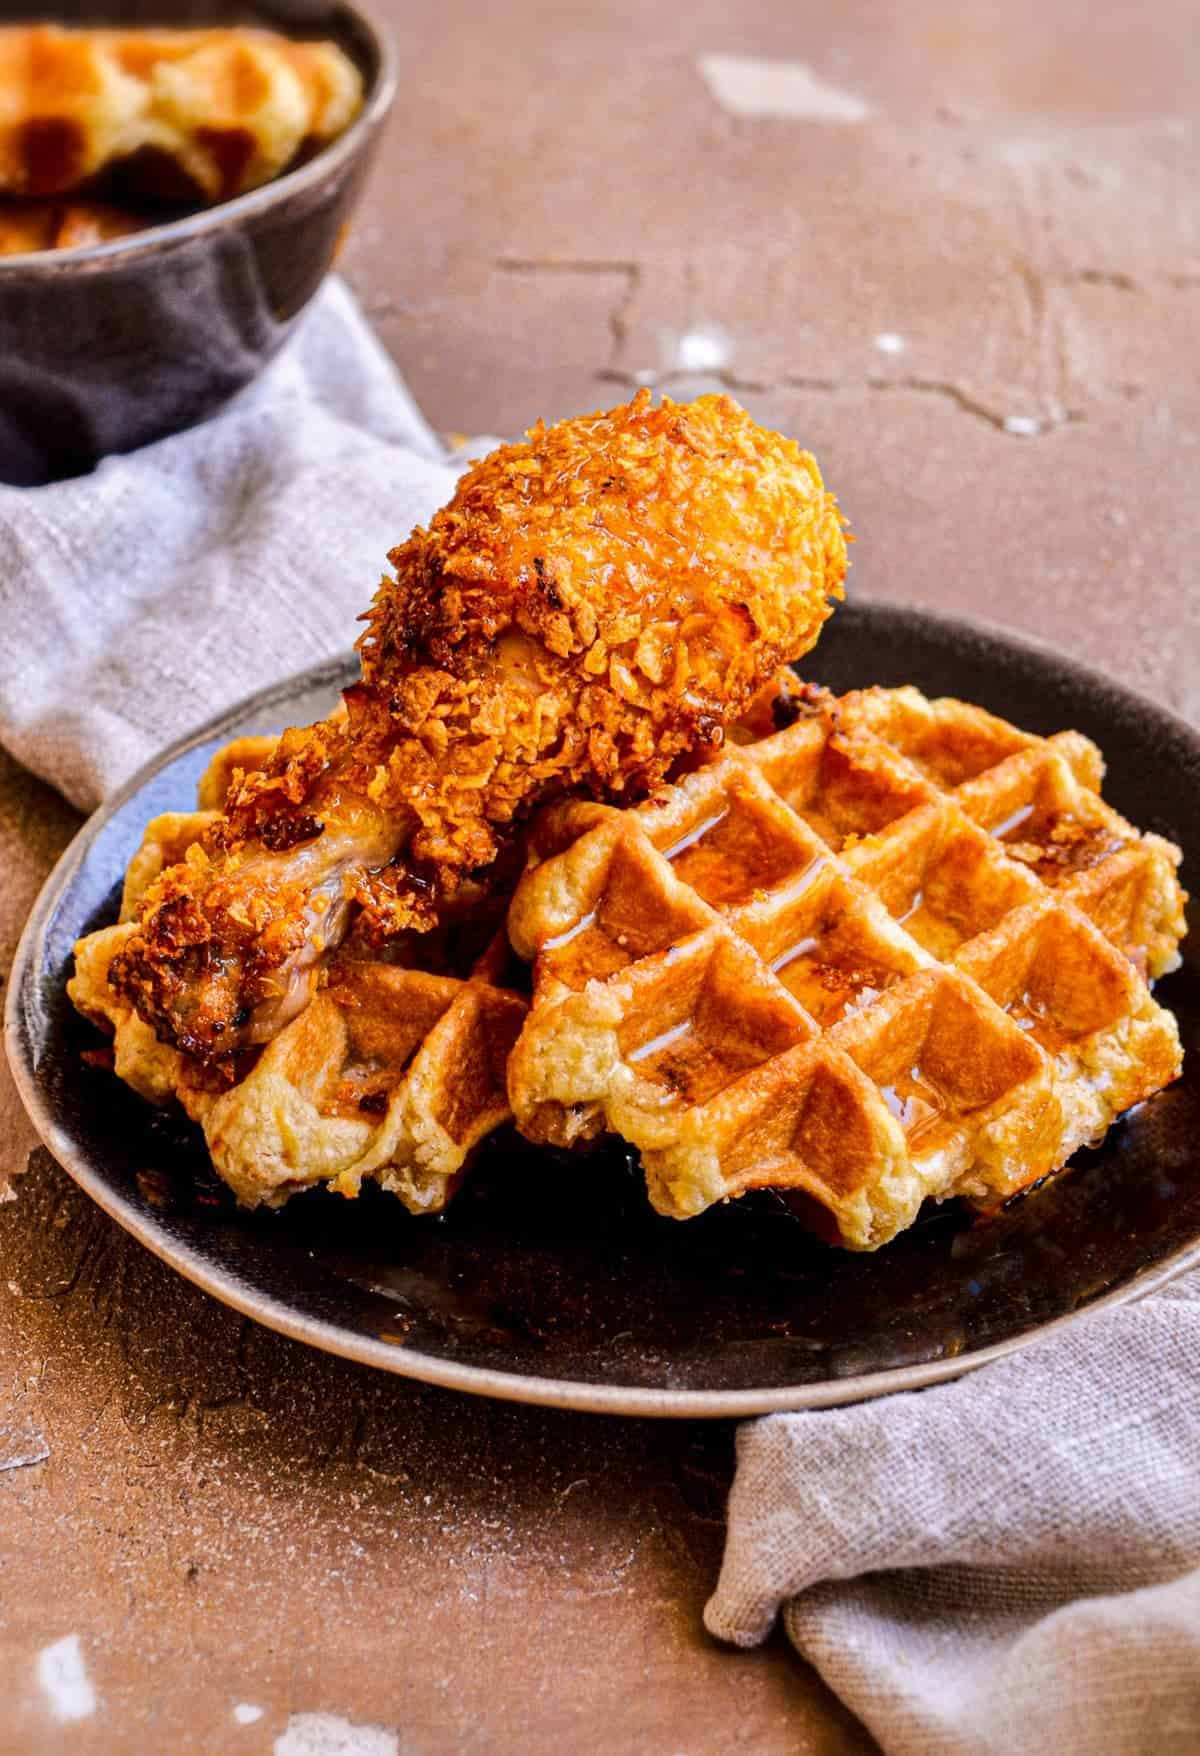 Chicken and Waffles on a black plate